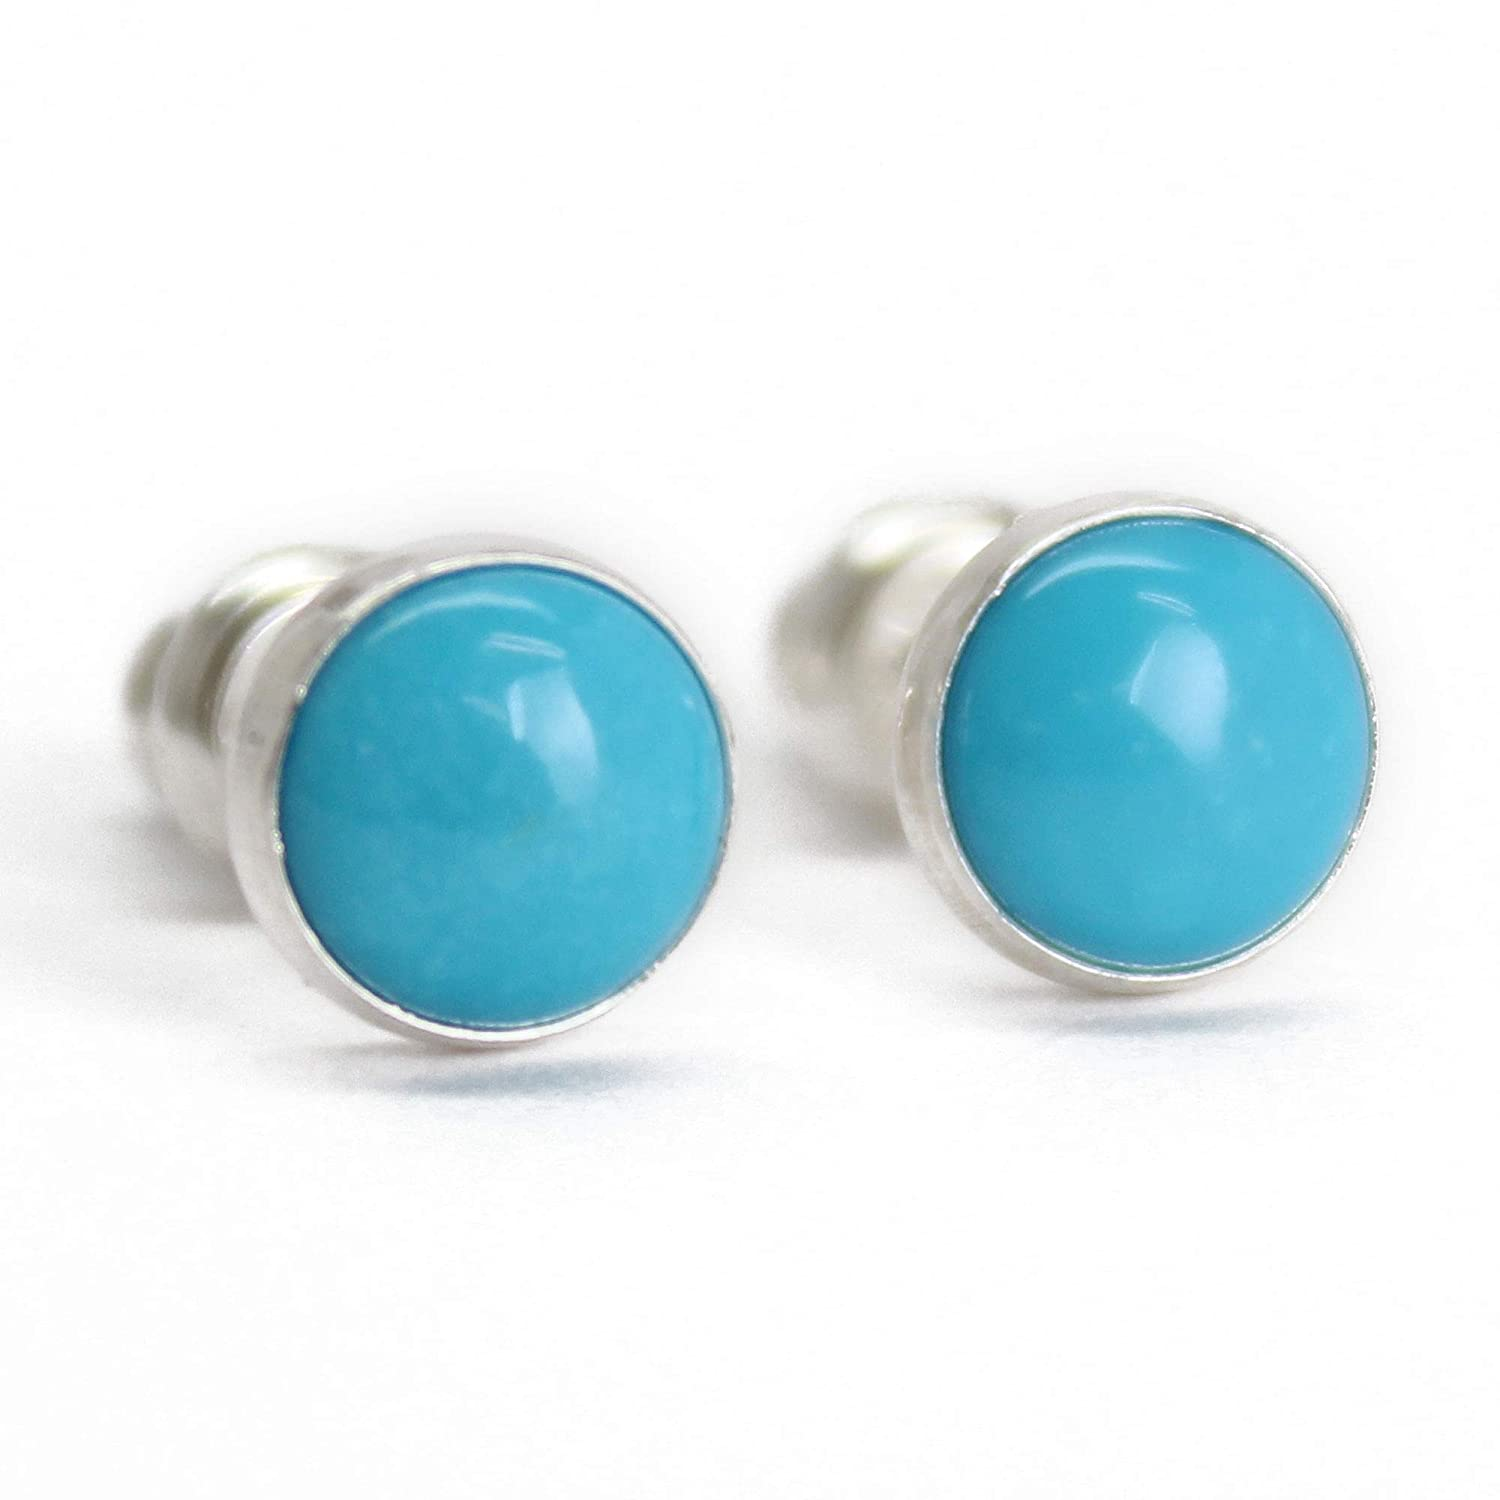 Silver Post Studs Stud Earrings Turquoise Blue and White Round Post Earrings Mini Studs Modern Pattern Small Studs